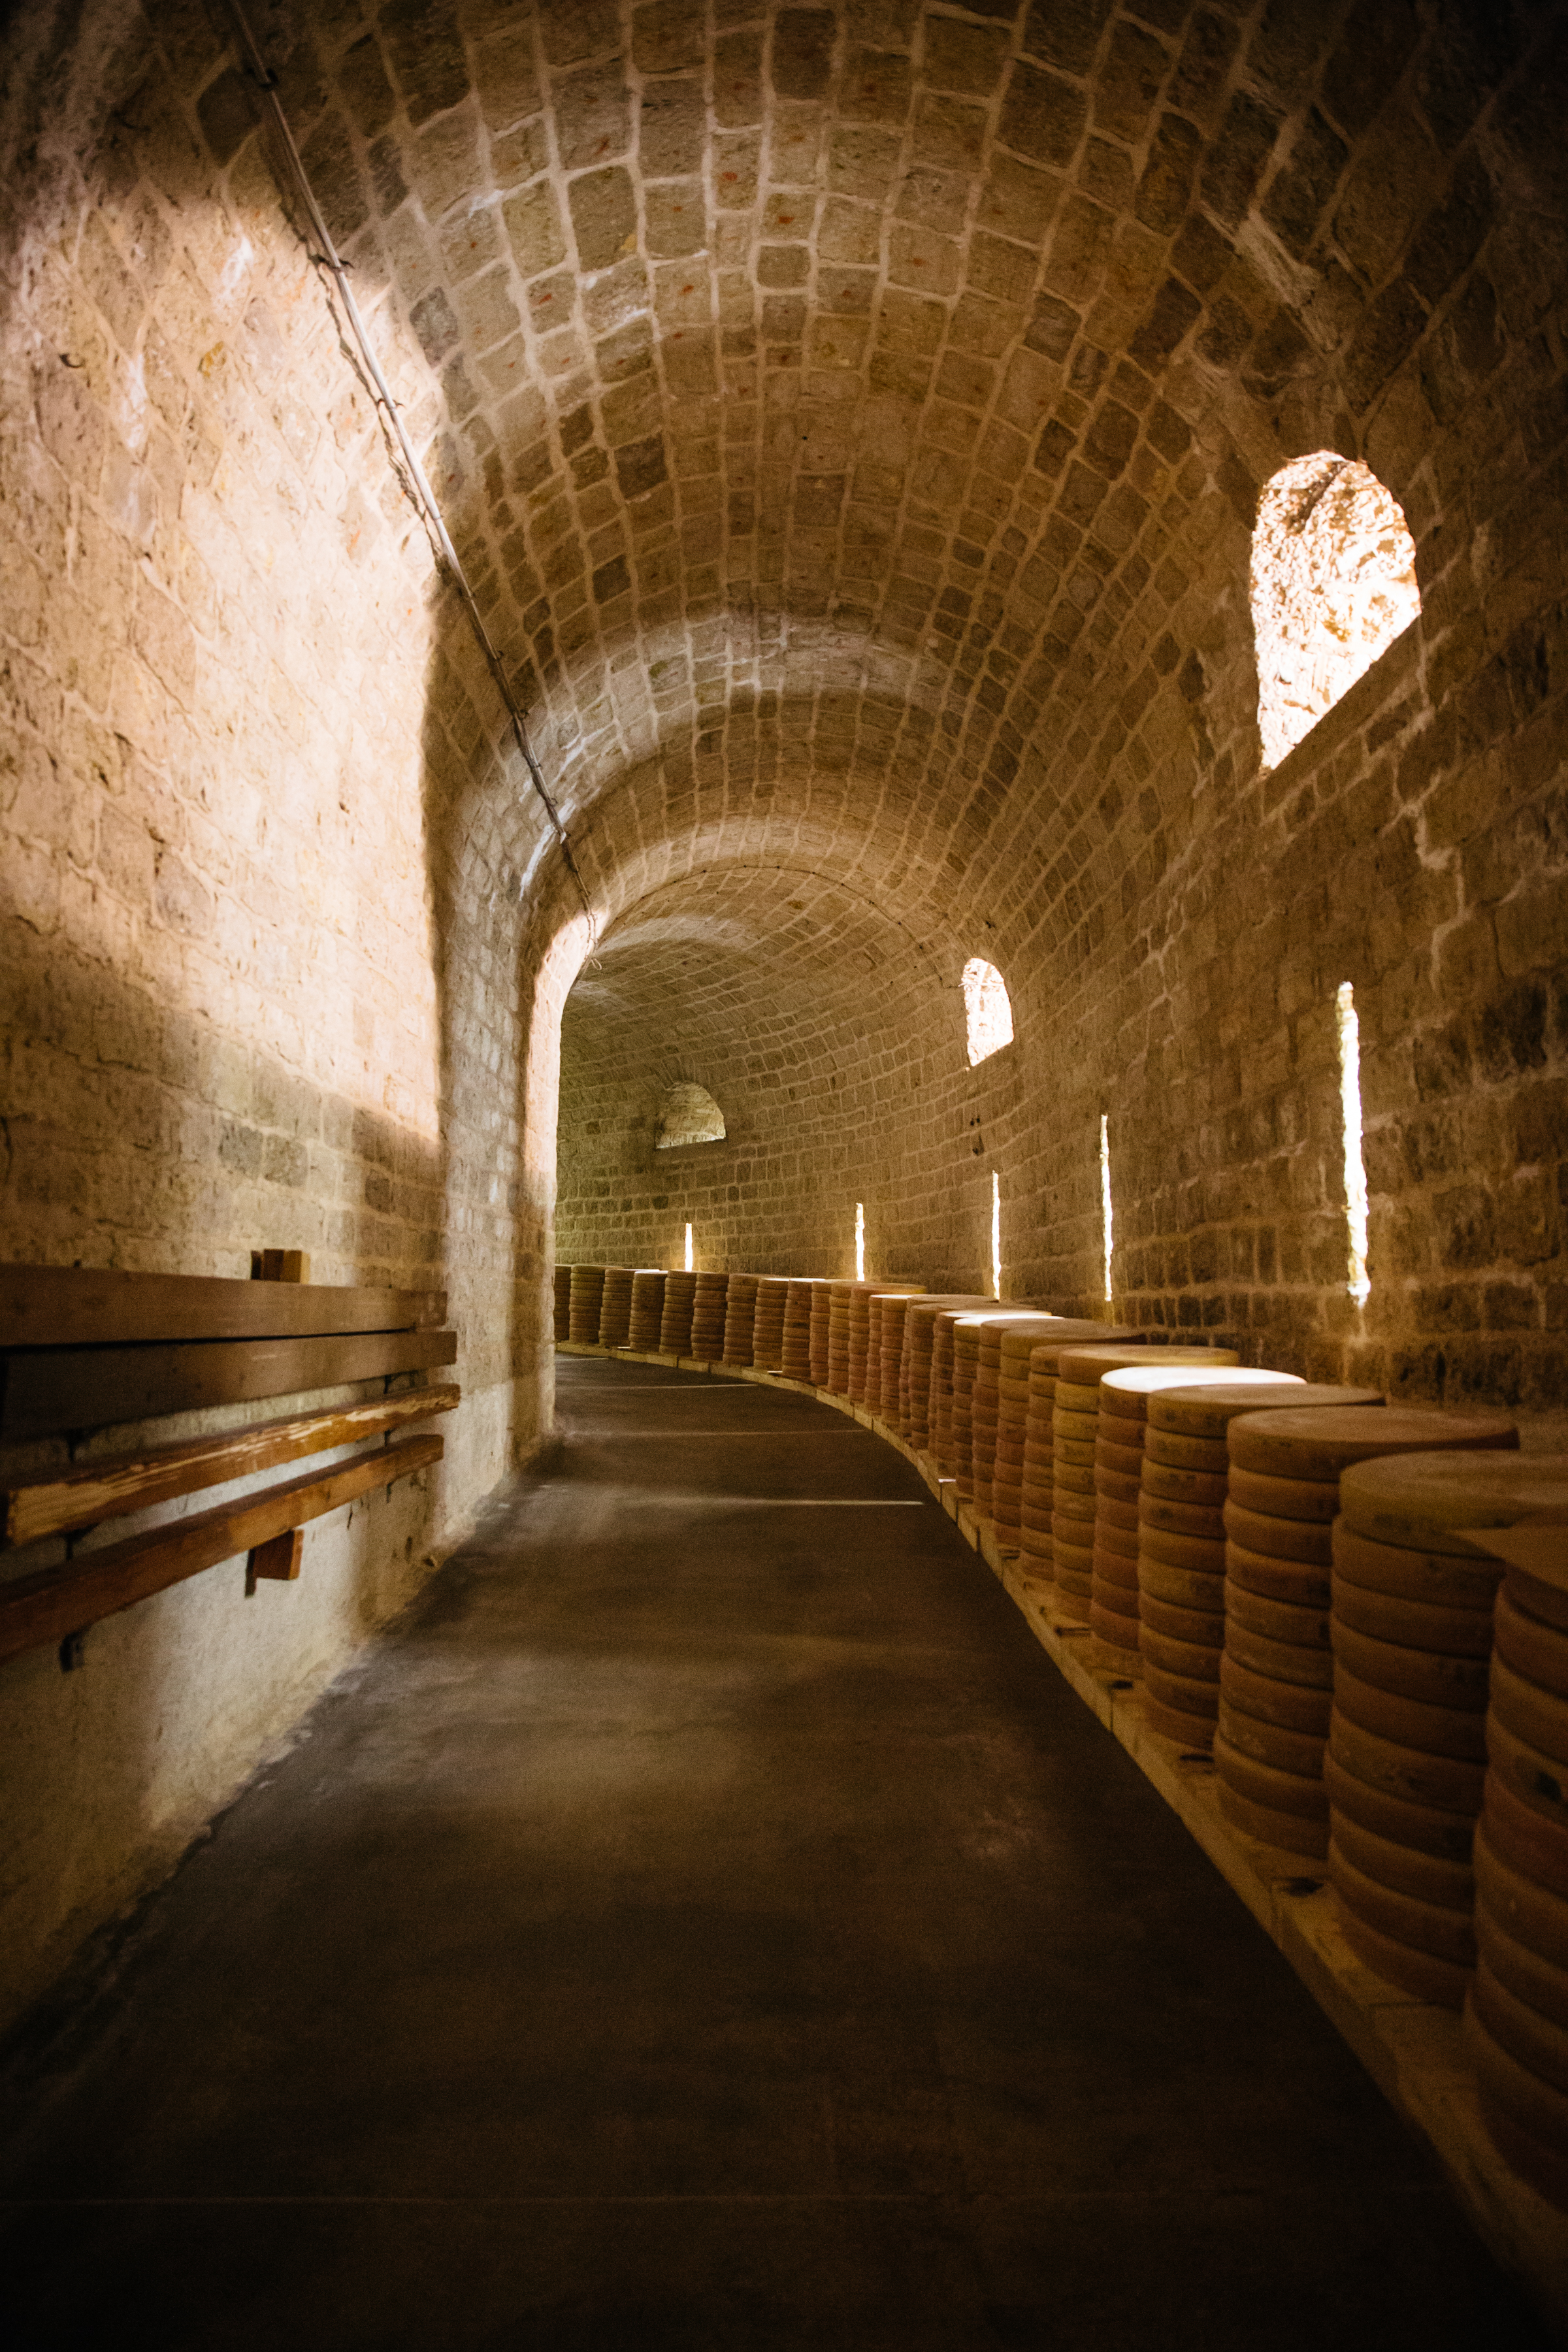 Fort St. Antoine - Marcel Petite's Fort St. Antonie is renowned as the aging vault for much of France's best Comté. It's a temple of cheese, an underground fort housing over a hundred thousand wheels of cheese. We're not the only importer sourcing Comté from this location. But no other importer comes to taste at all, let alone ten times per year. No other importer gets cheeses that are as consistent, as balanced, and as deeply flavored.